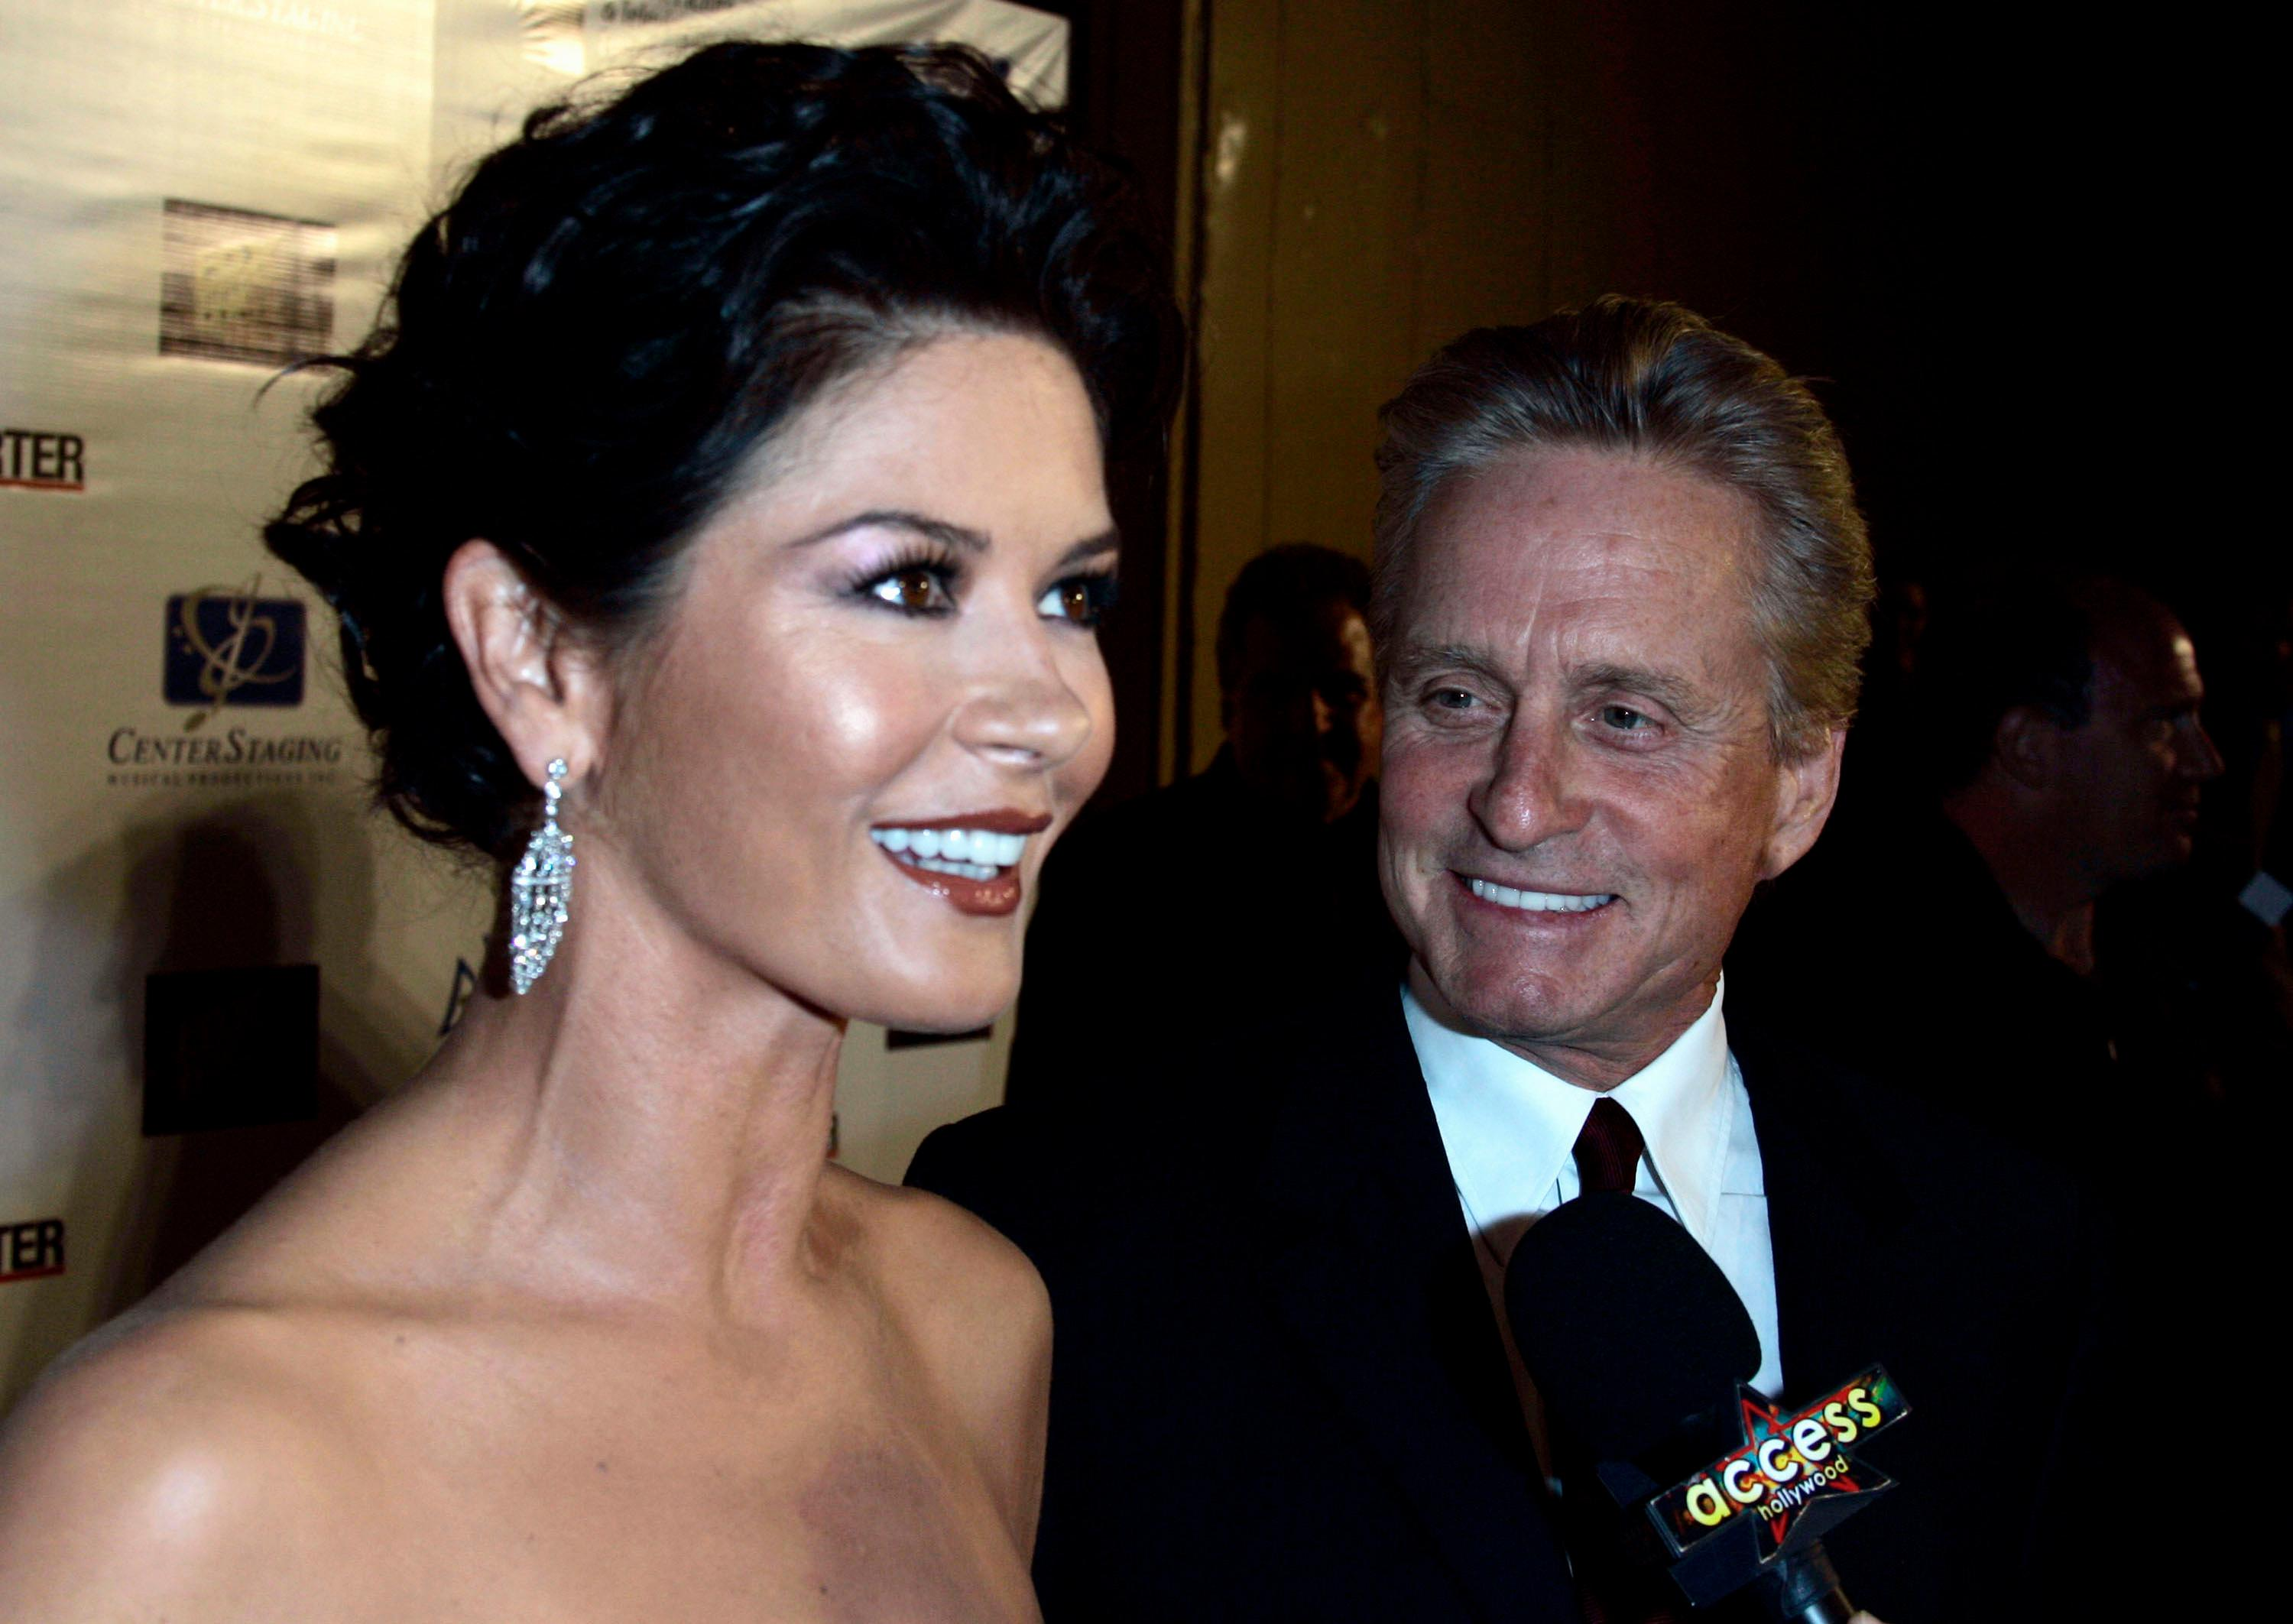 Michael Douglas accuser Susan Braudy goes public with harassment allegations